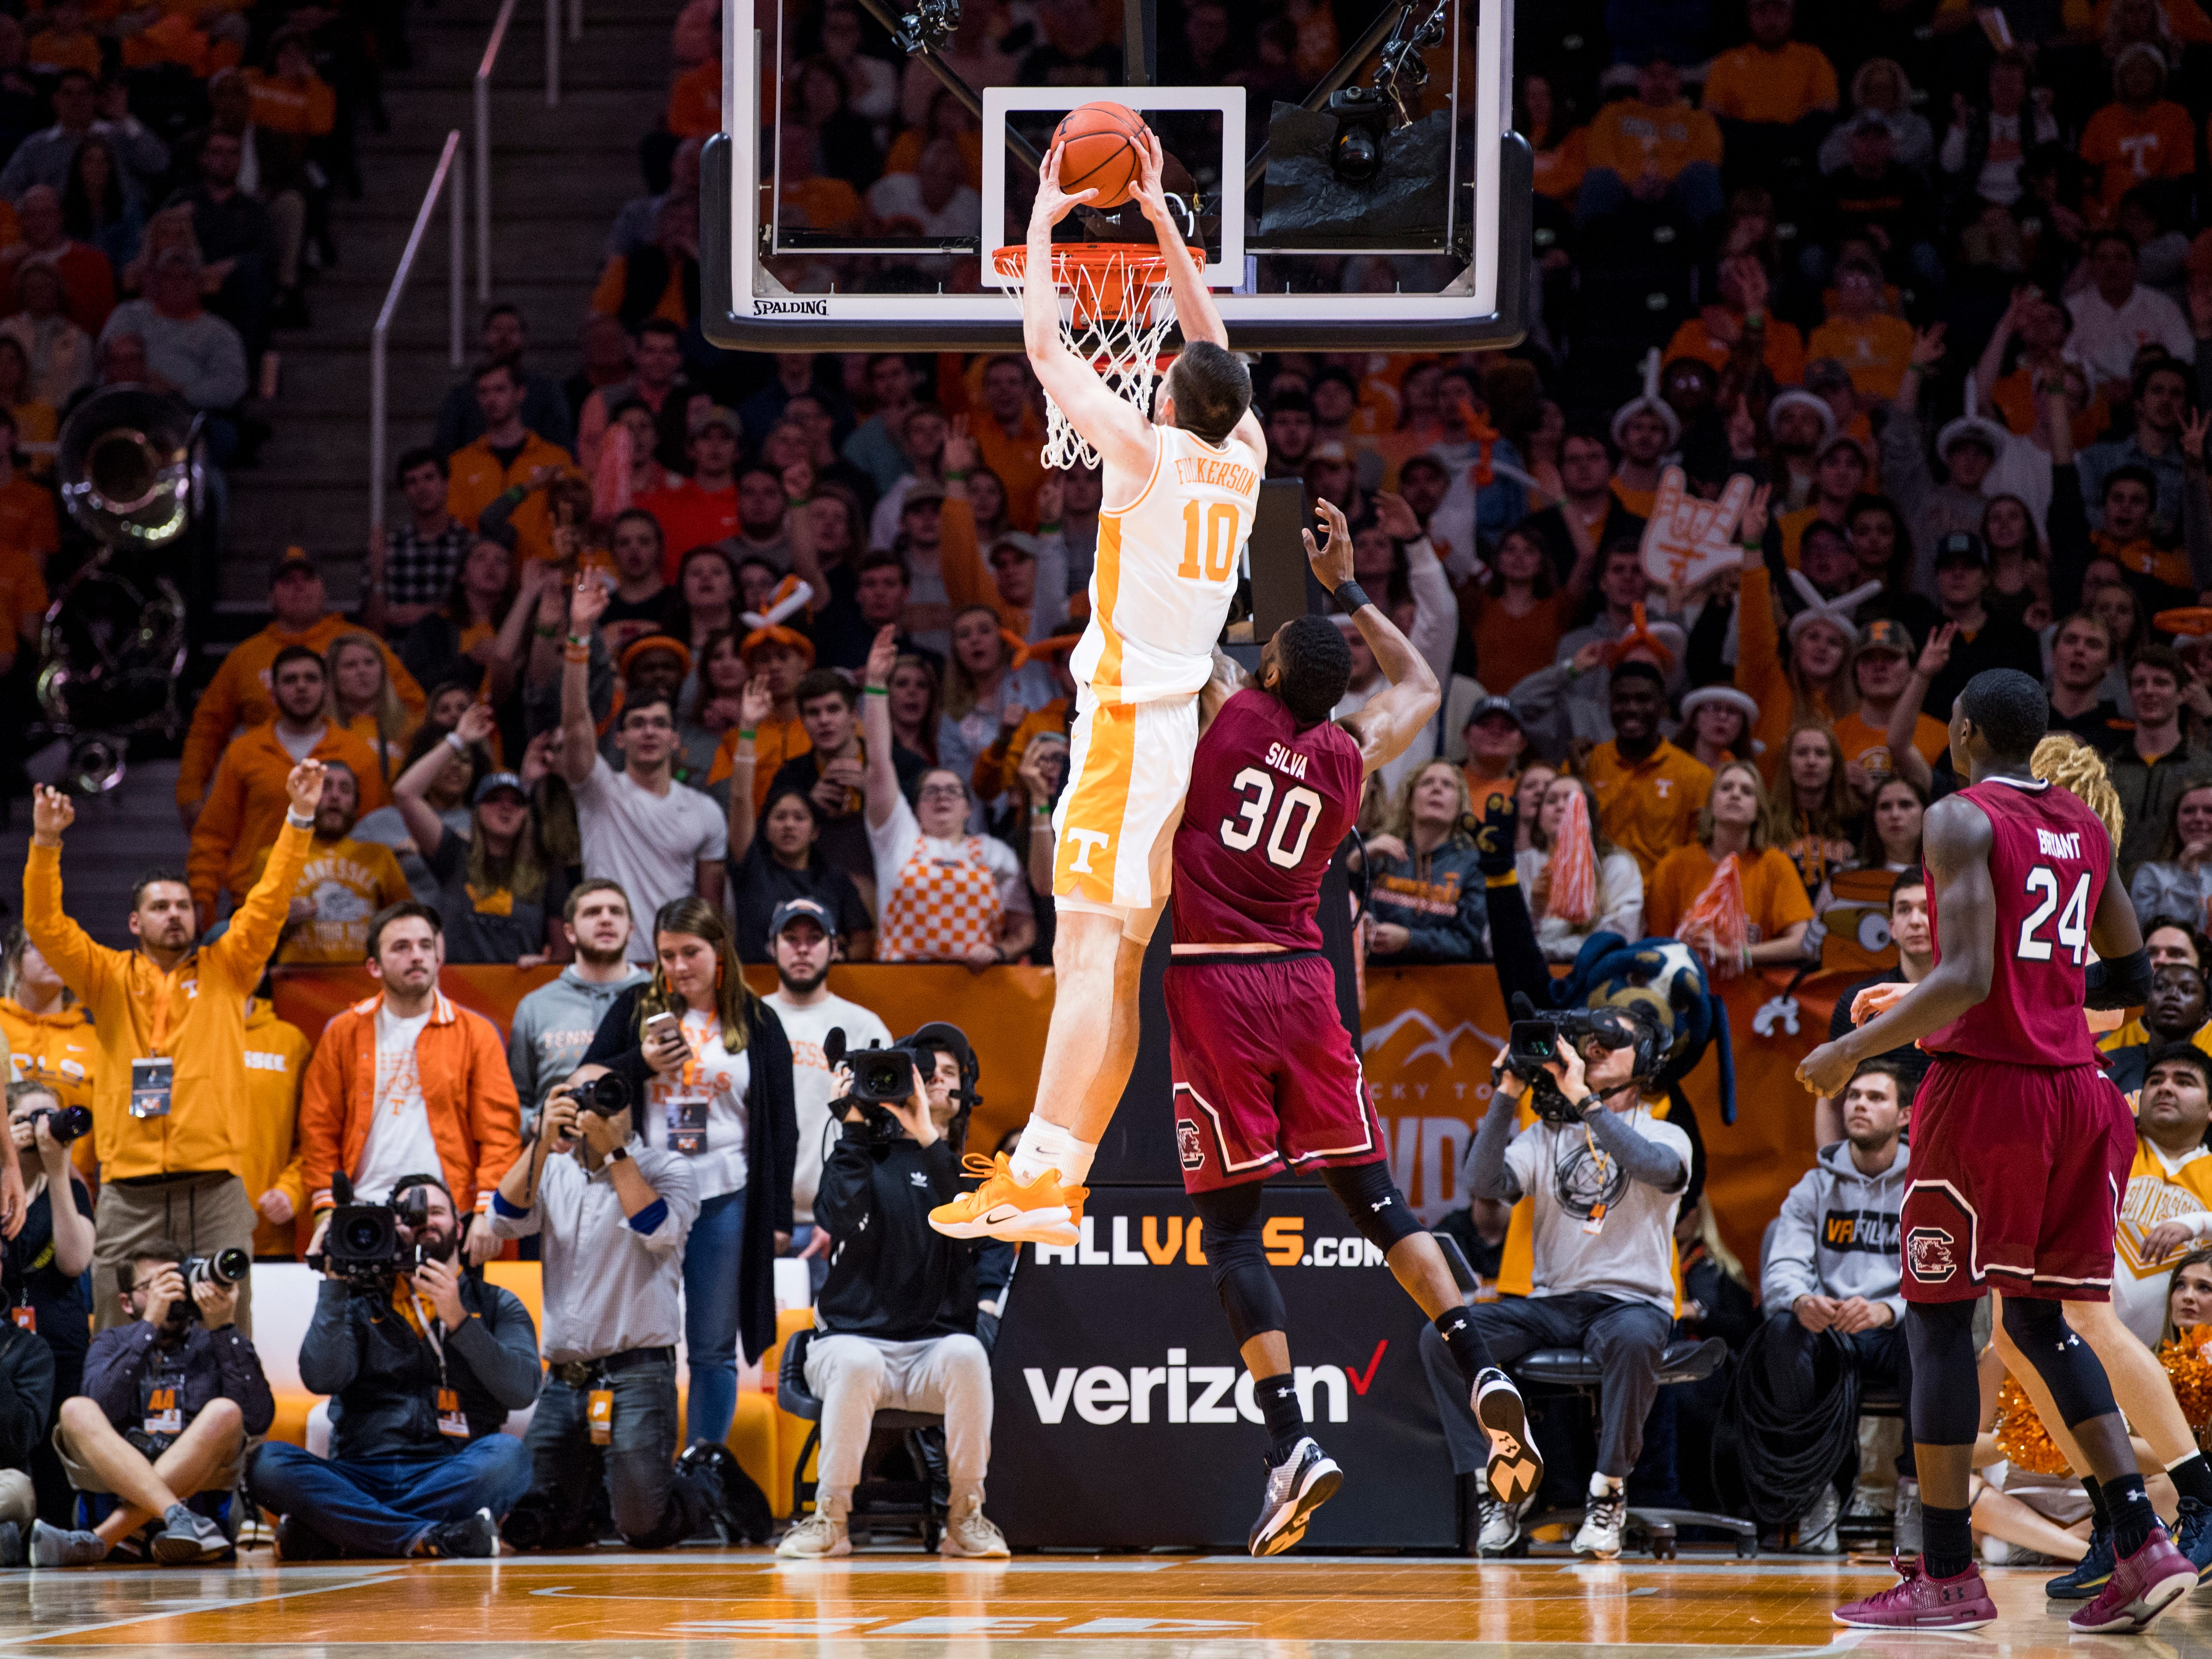 Tennessee forward John Fulkerson (10) dunks during Tennessee's home SEC game against South Carolina at Thompson-Boling Arena in Knoxville on Wednesday, February 13, 2019.